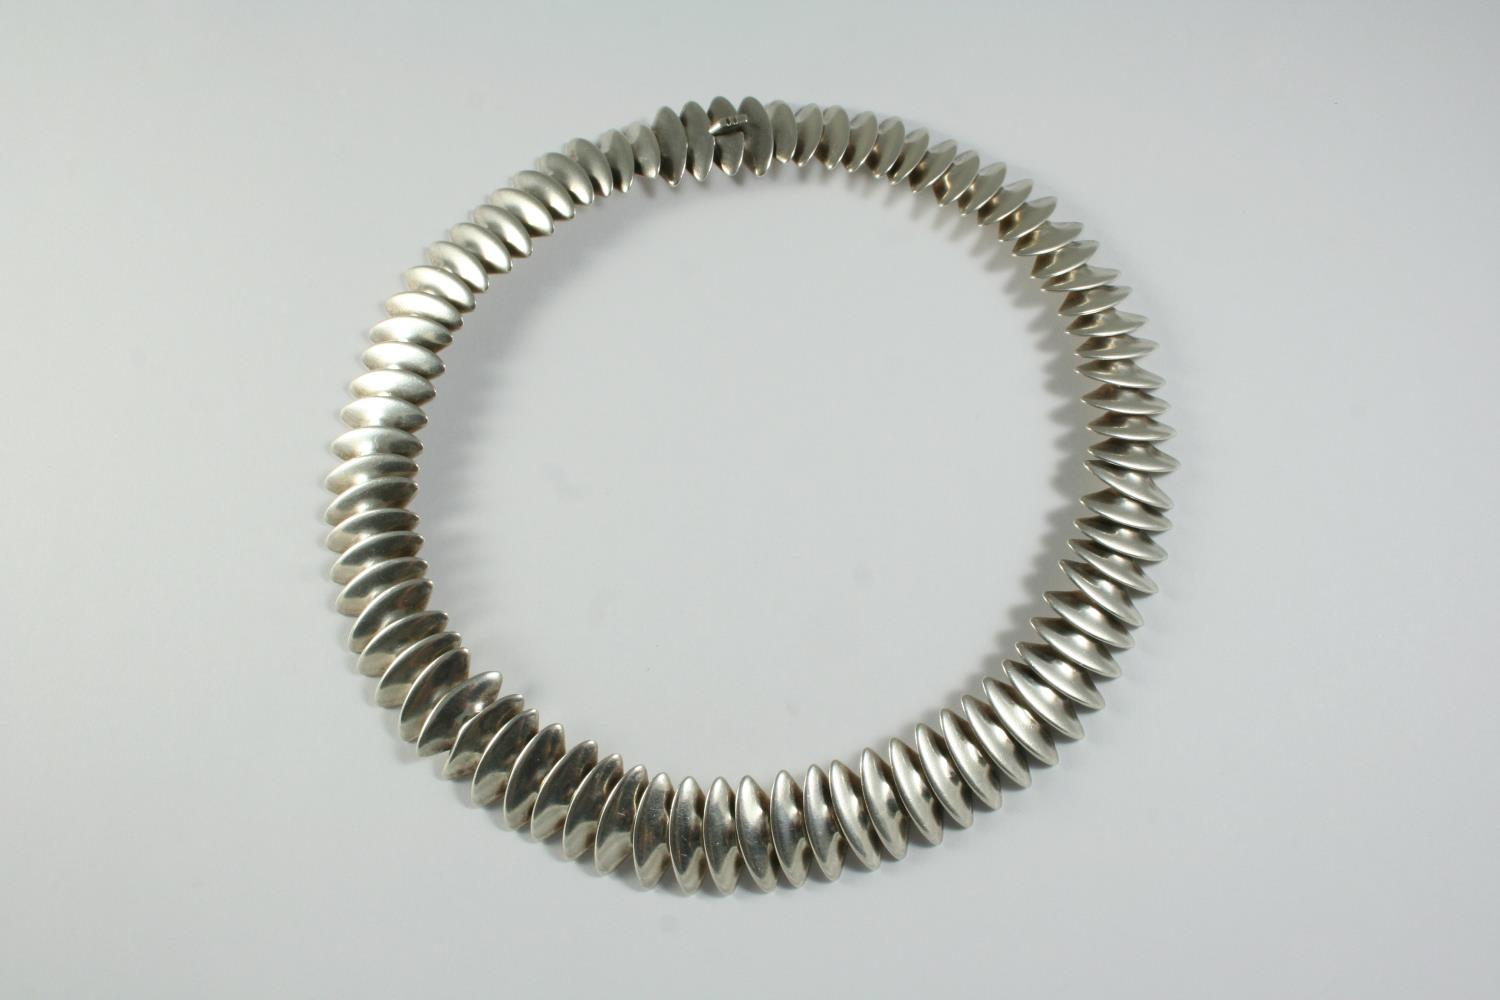 A SILVER NECKLACE BY GEORG JENSEN designed by Hans Hansen, formed with inter-linking discs, with